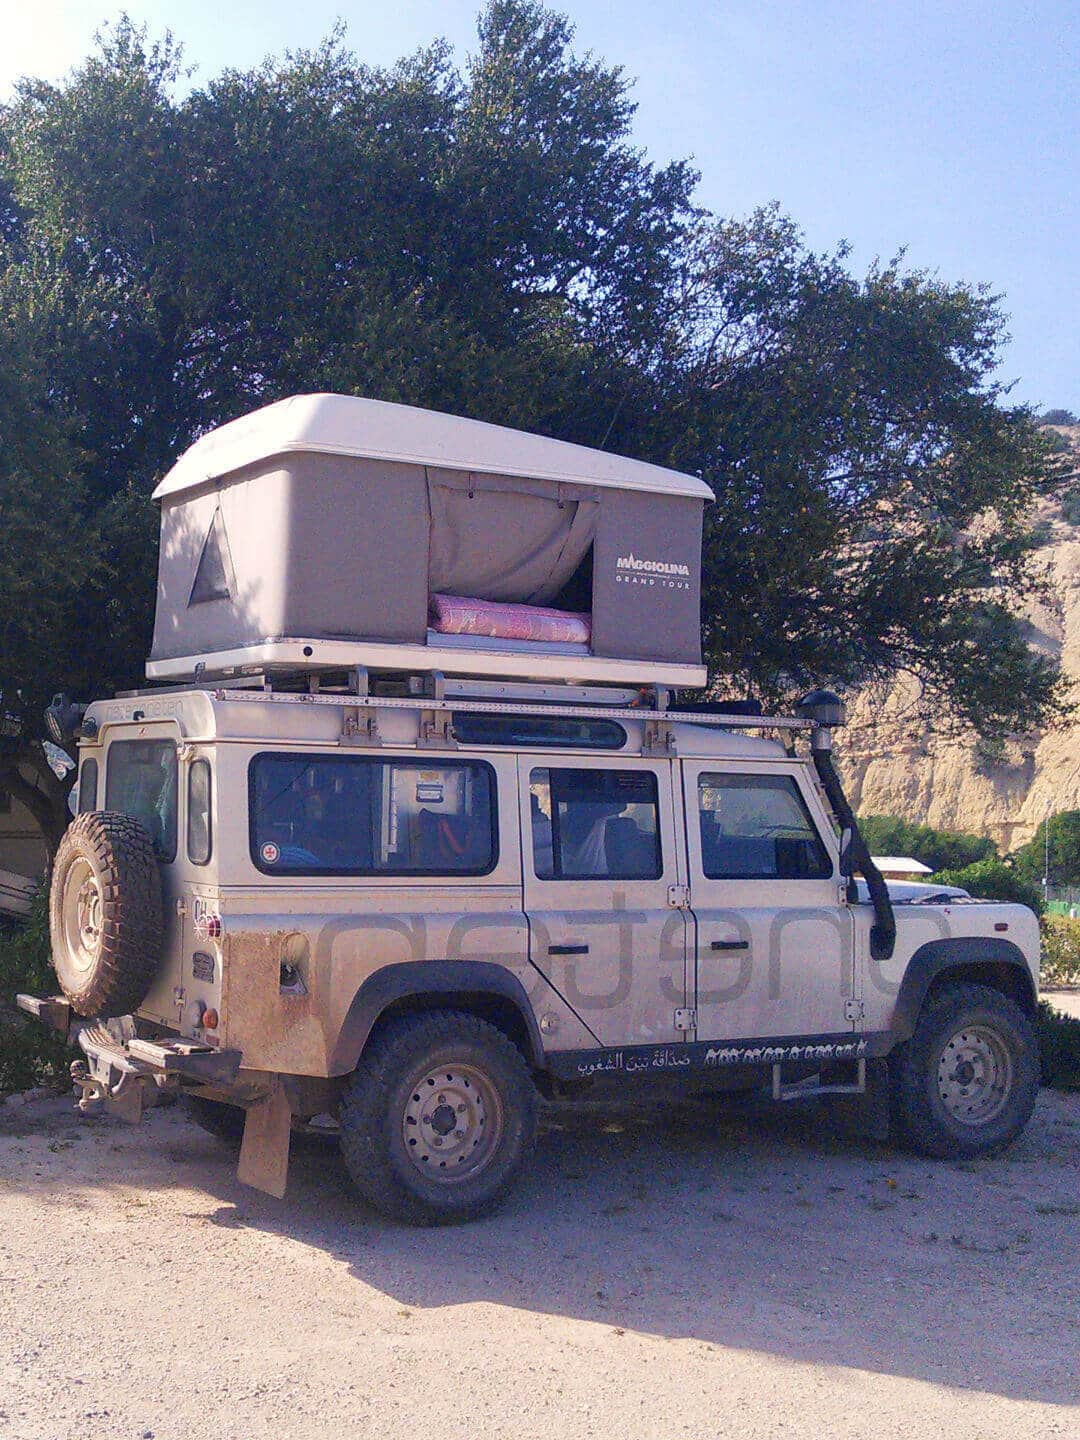 Camping Aourir – Land Rover Defender on the Campsite in Aourir